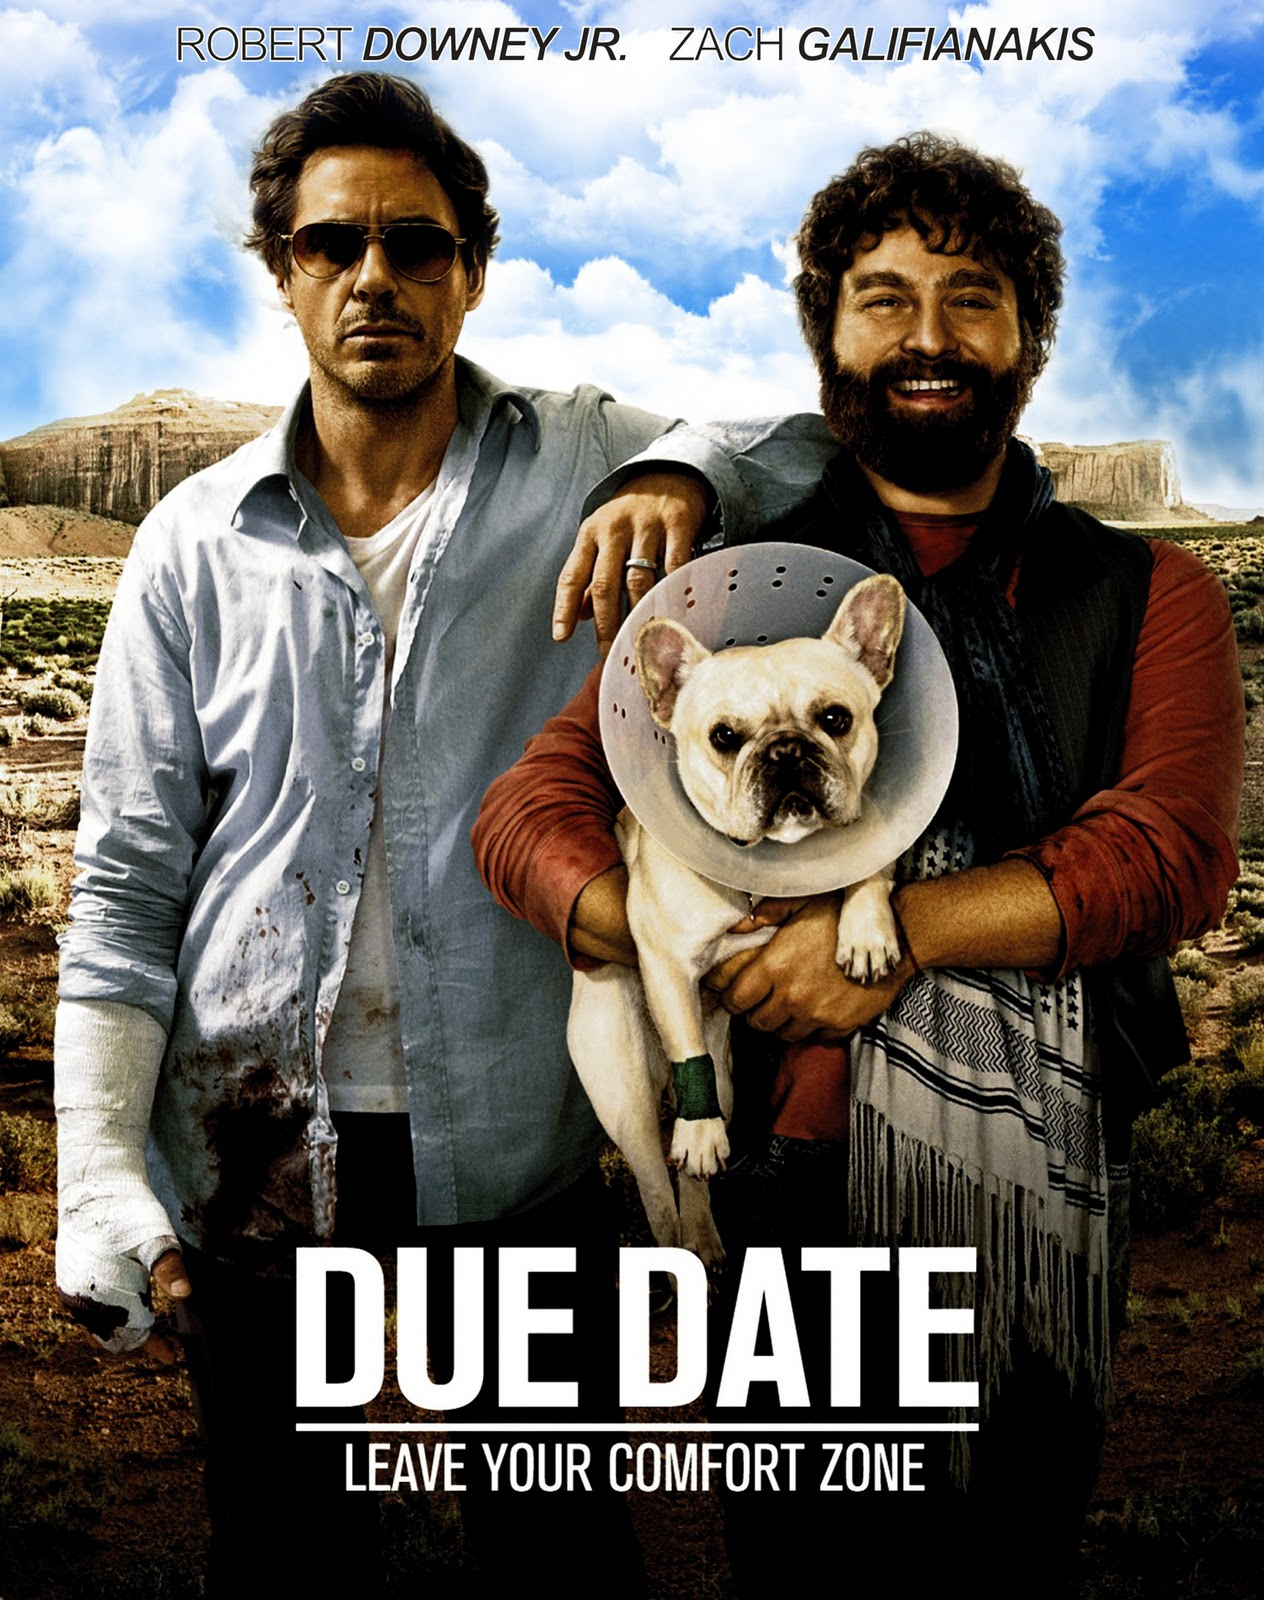 asian dating due date movie